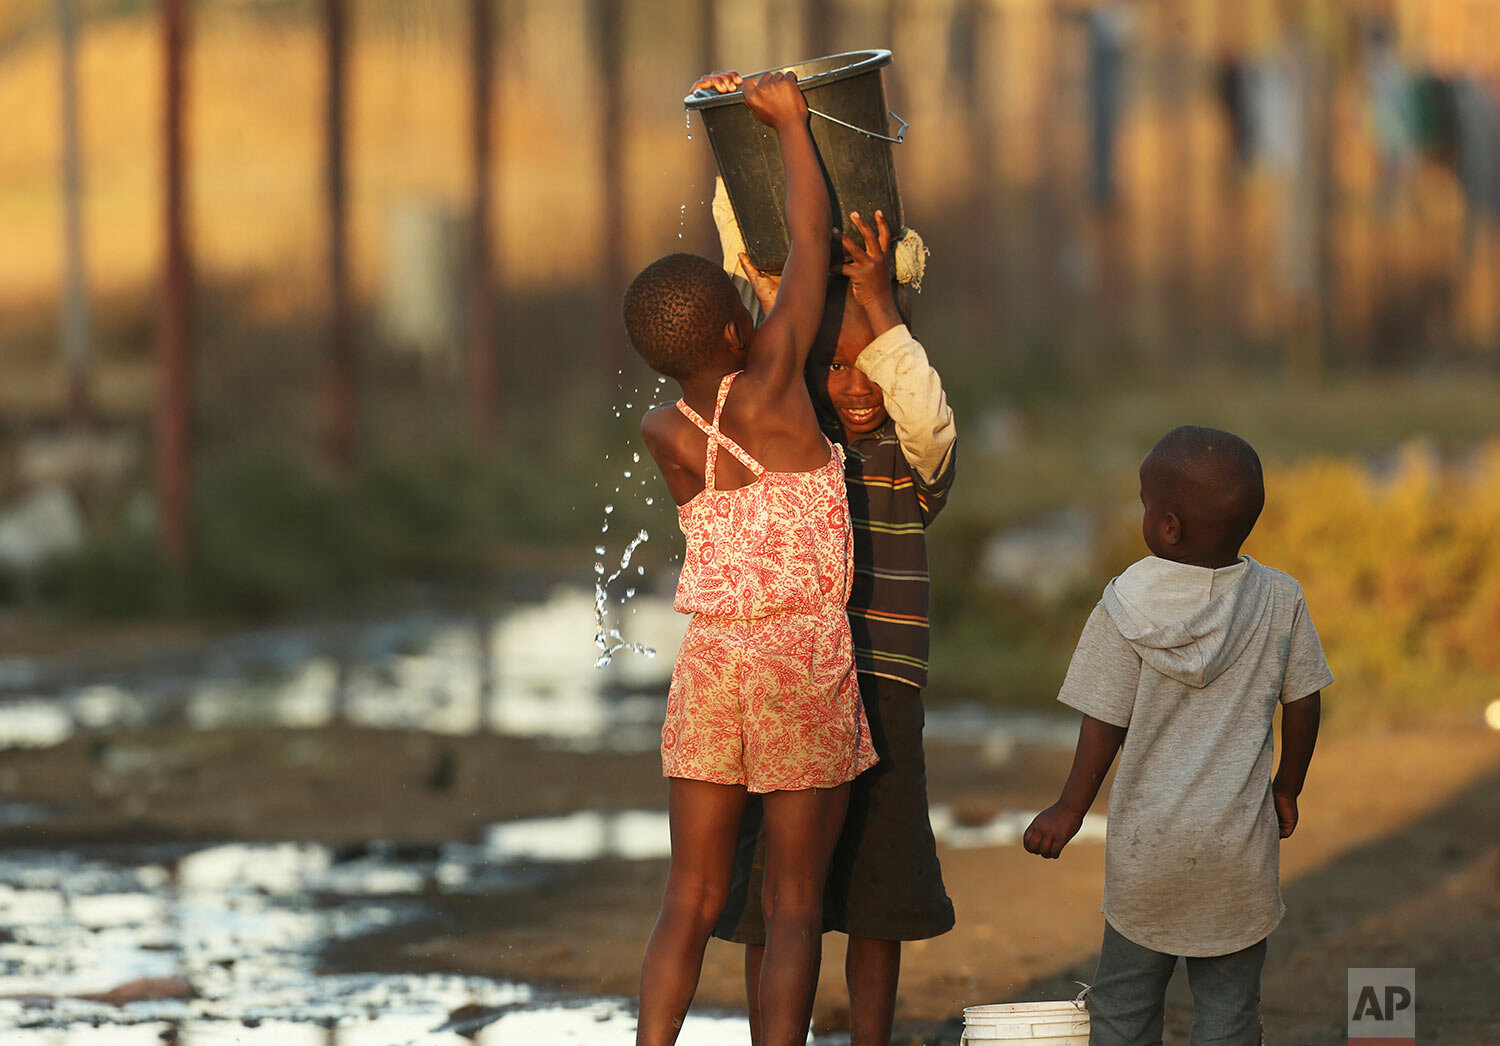 Children help each other to carry a bucket filled with water in Harare, Sept. 8, 2019. (AP Photo/Tsvangirayi Mukwazhi)